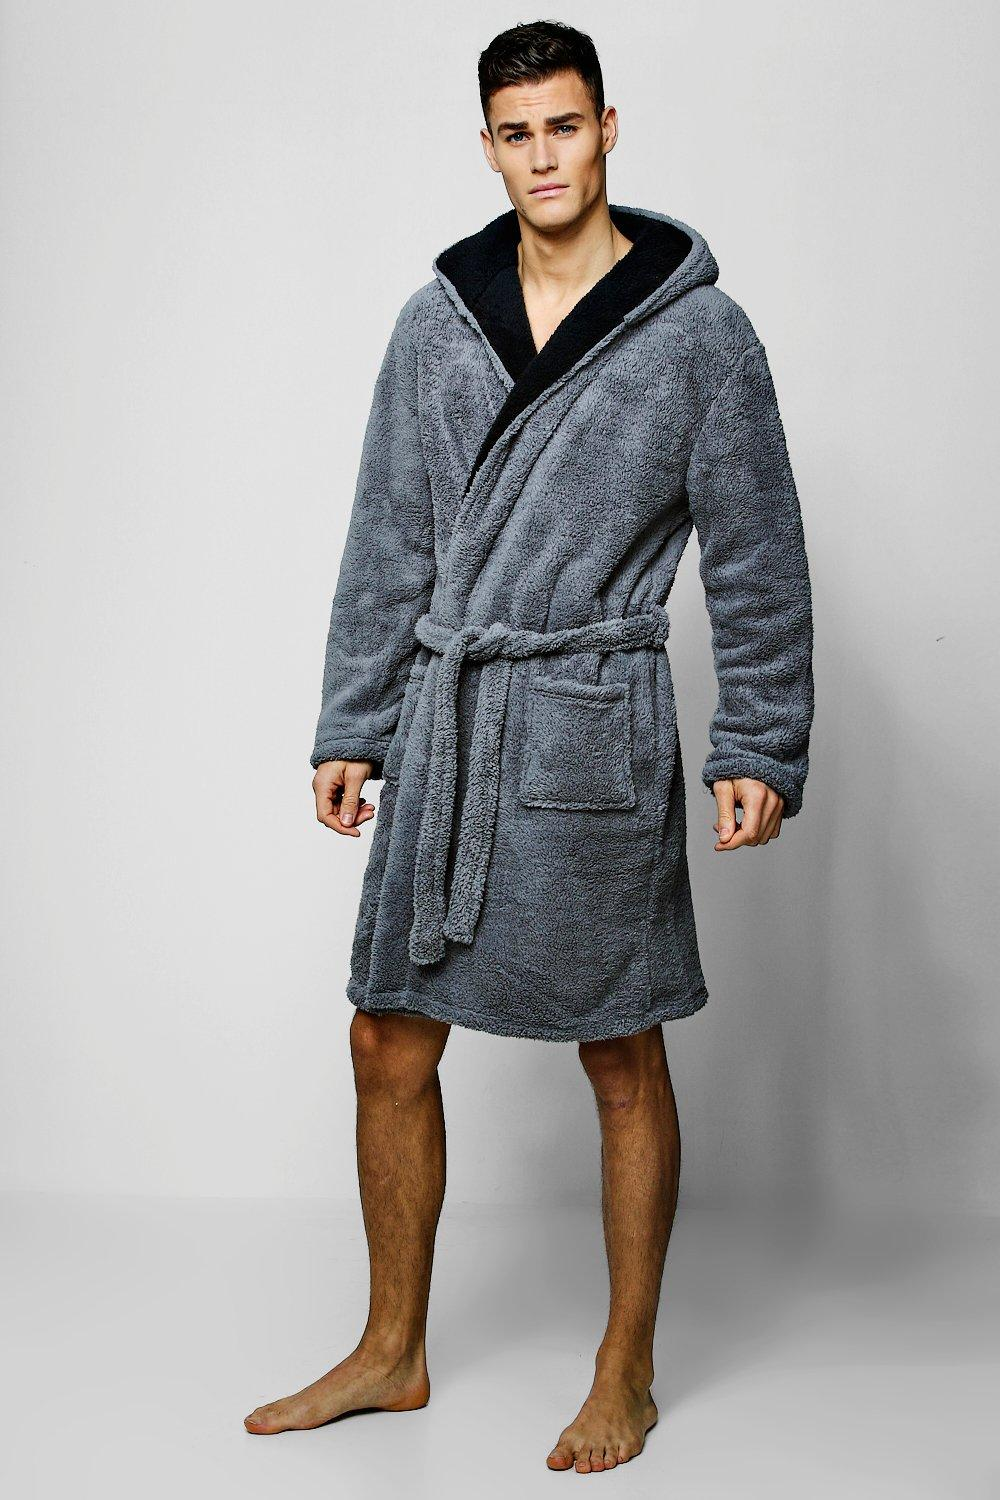 e10b0f7679 Mens Shaggy Fleece Robe With Contrast Lining. Hover to zoom